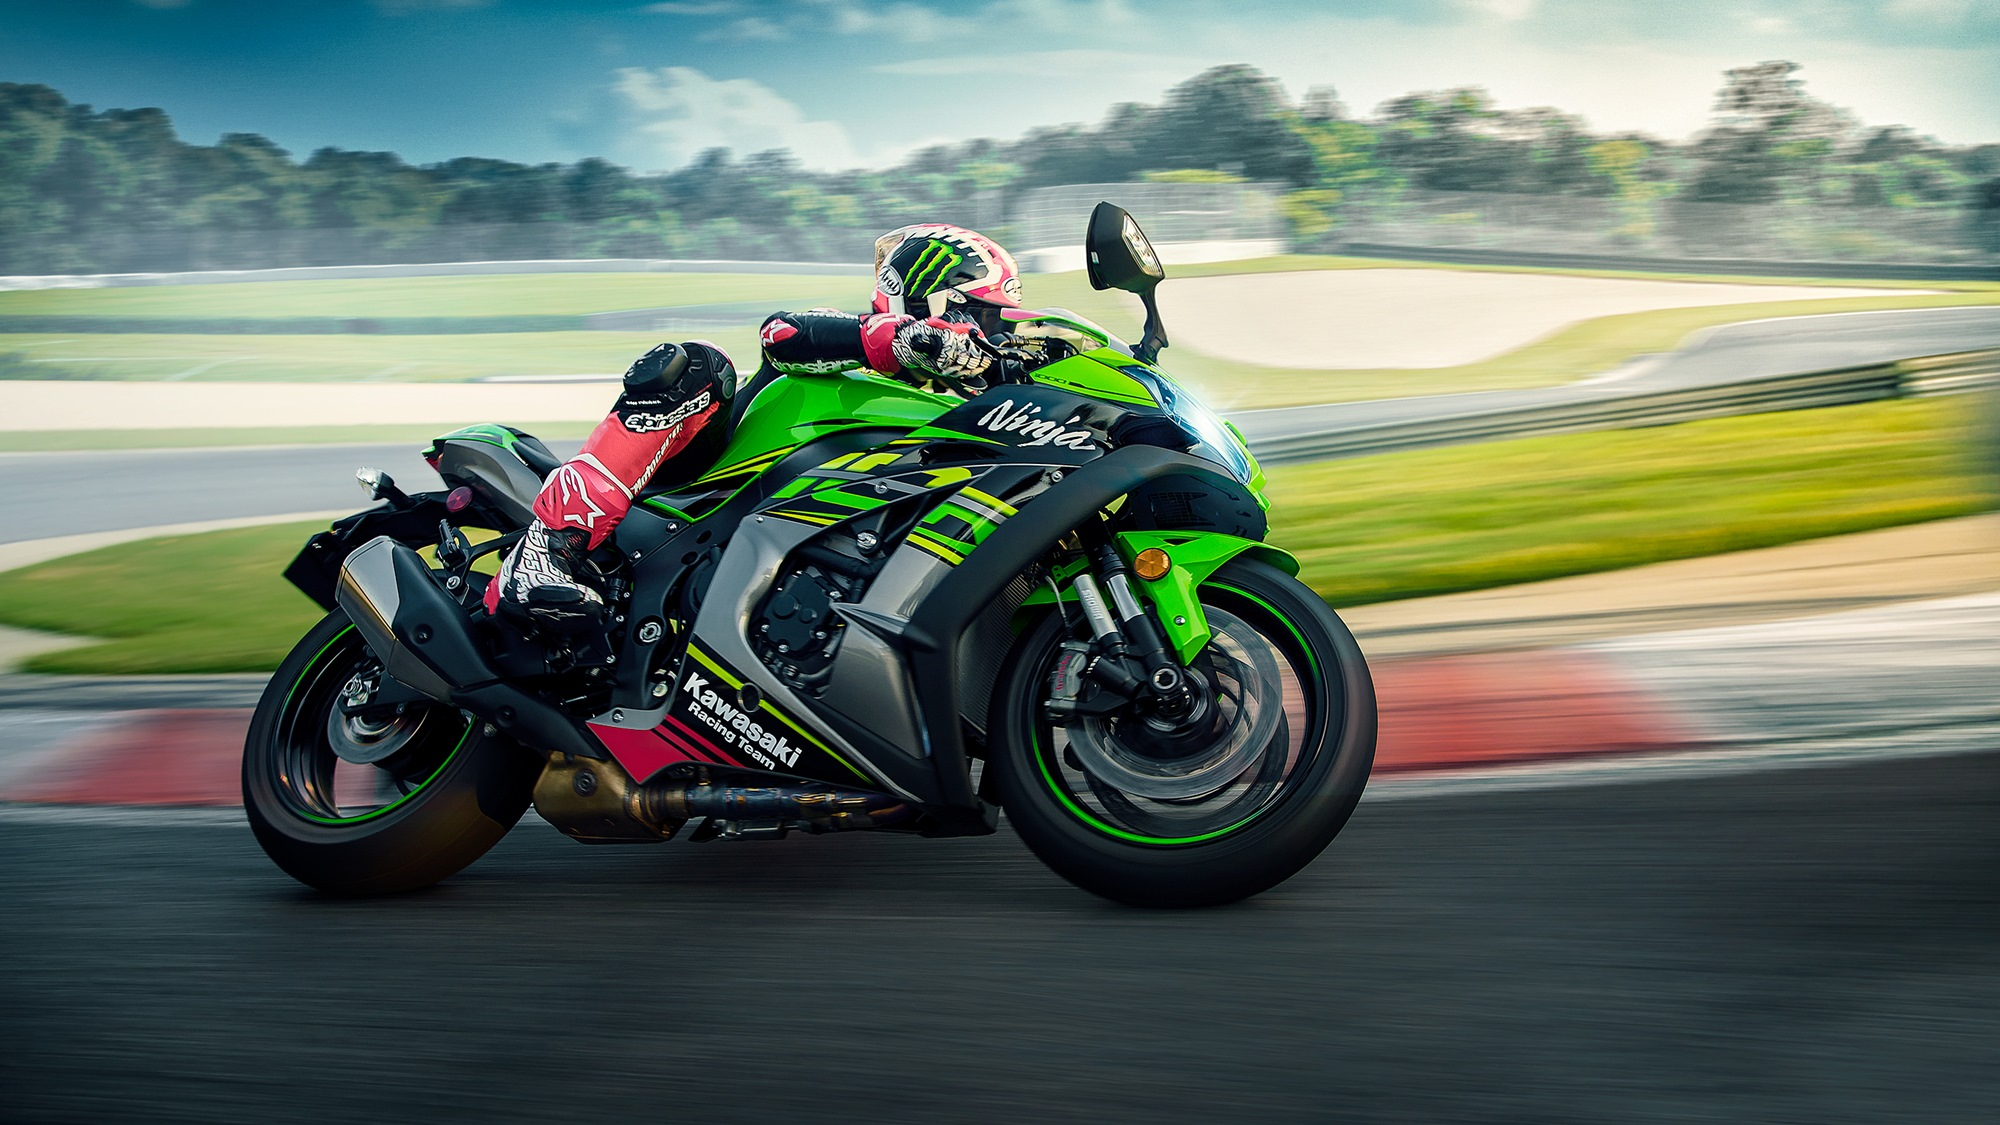 2019 Kawasaki Ninja ZX-10R HD wallpapers